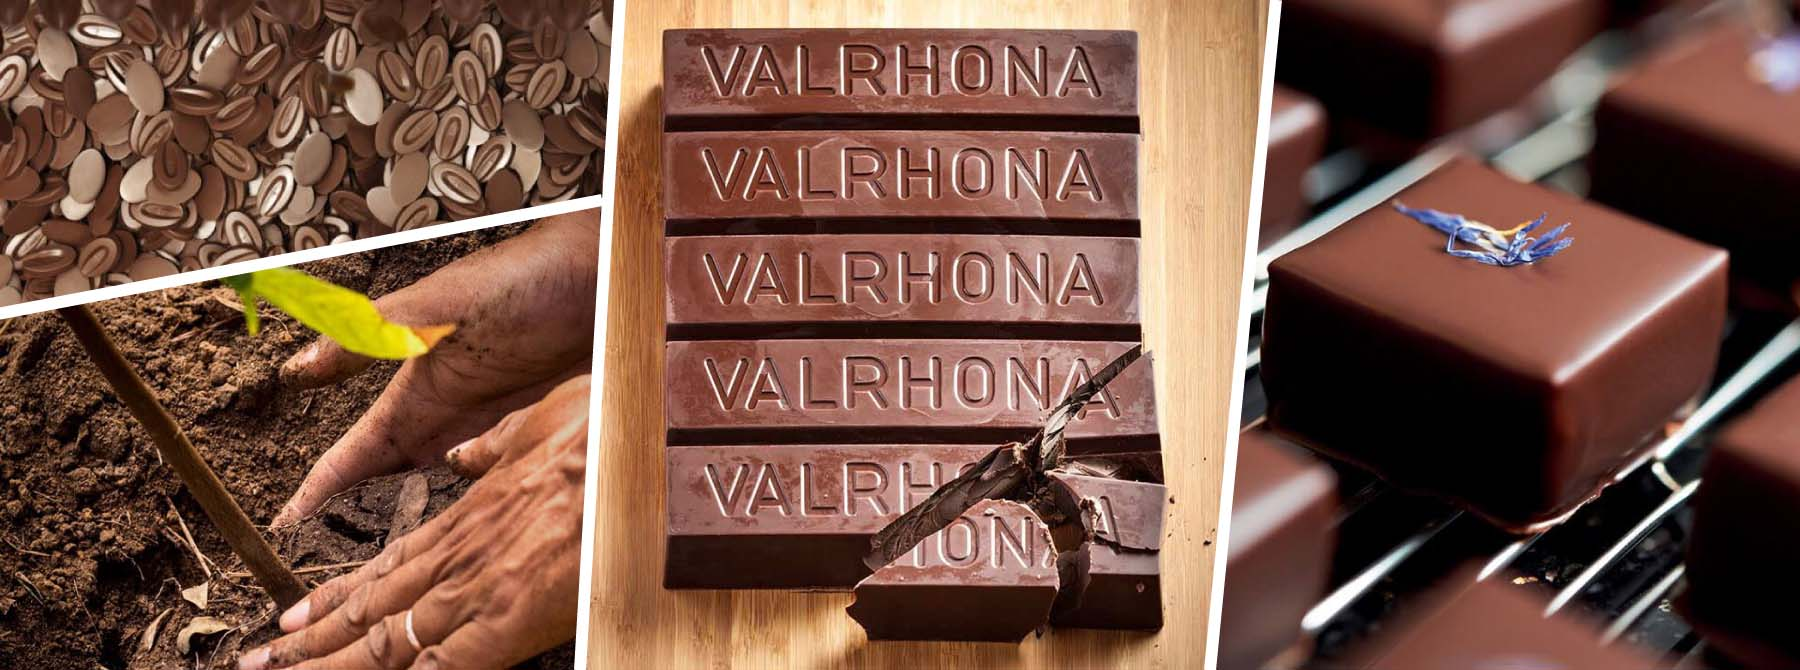 CHOCOLATERA VALRHONA: LA CASA DEL MEJOR CHOCOLATE DEL MUNDO